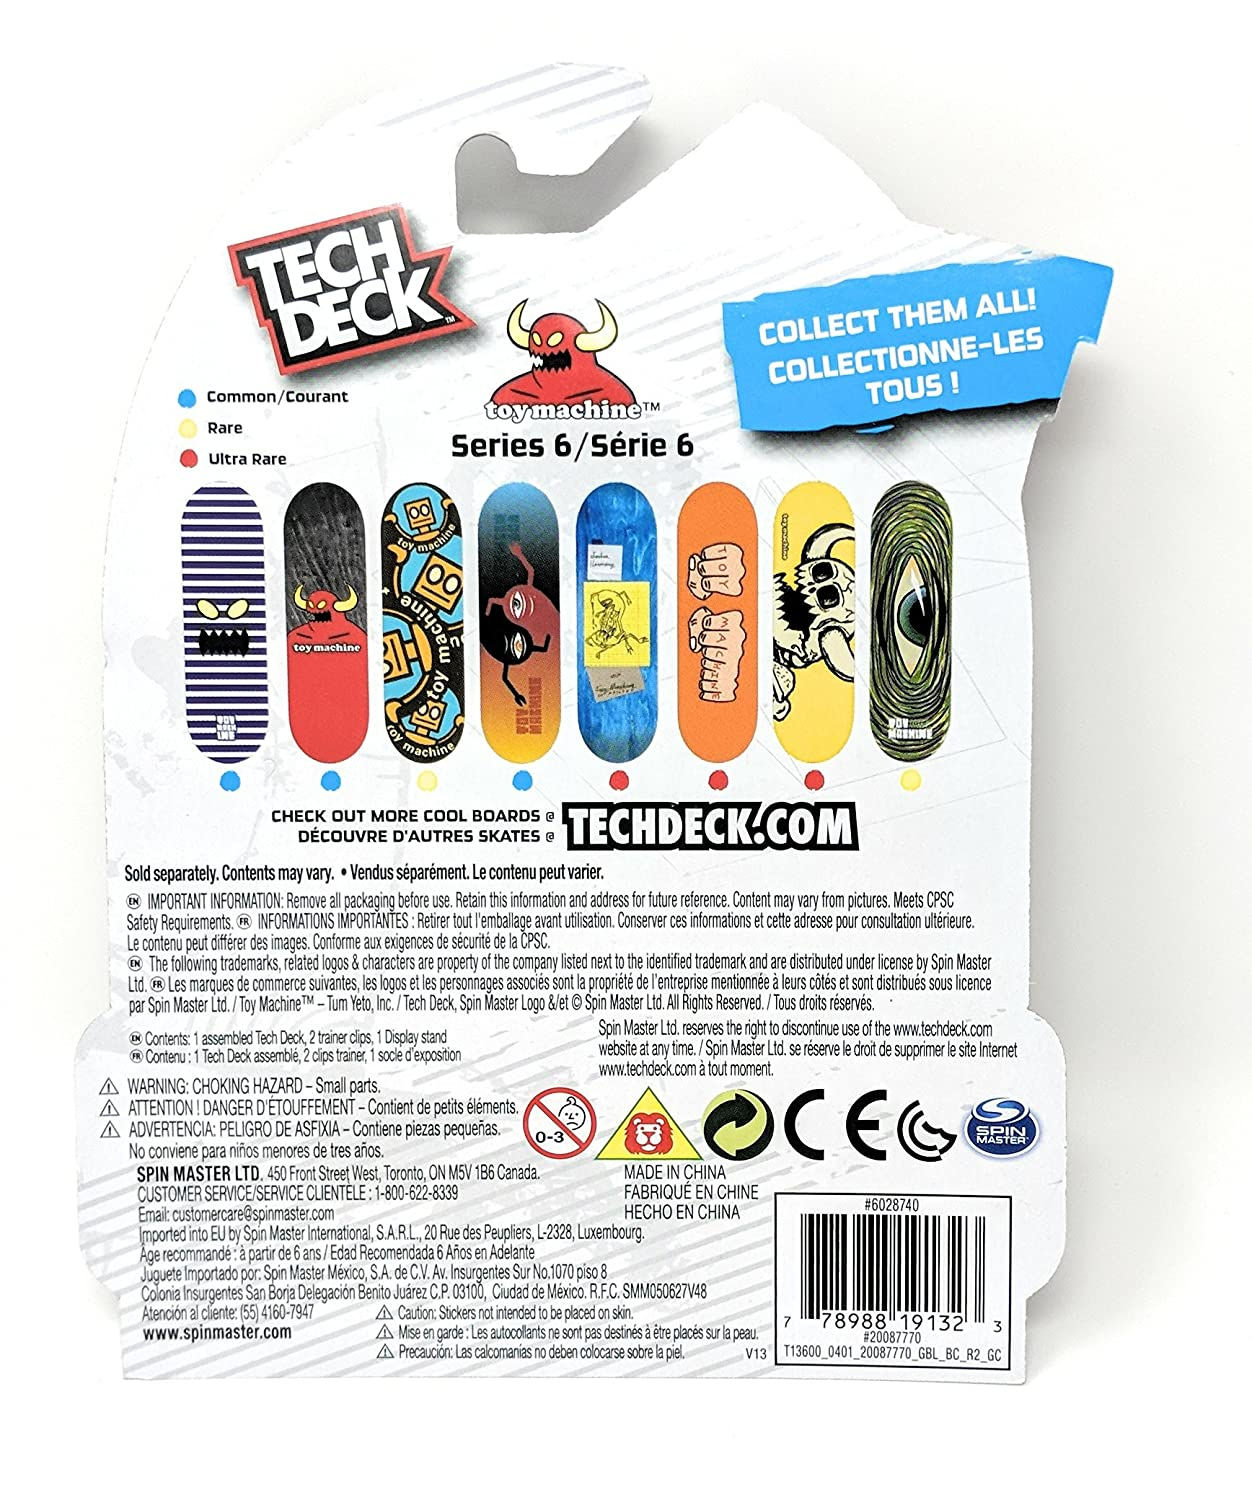 Amazon.com: Tech Deck Toy Machine Skateboards Series 6 Sect Yin Yang Fingerboard - Starter Board with Trainer Clips: Toys & Games